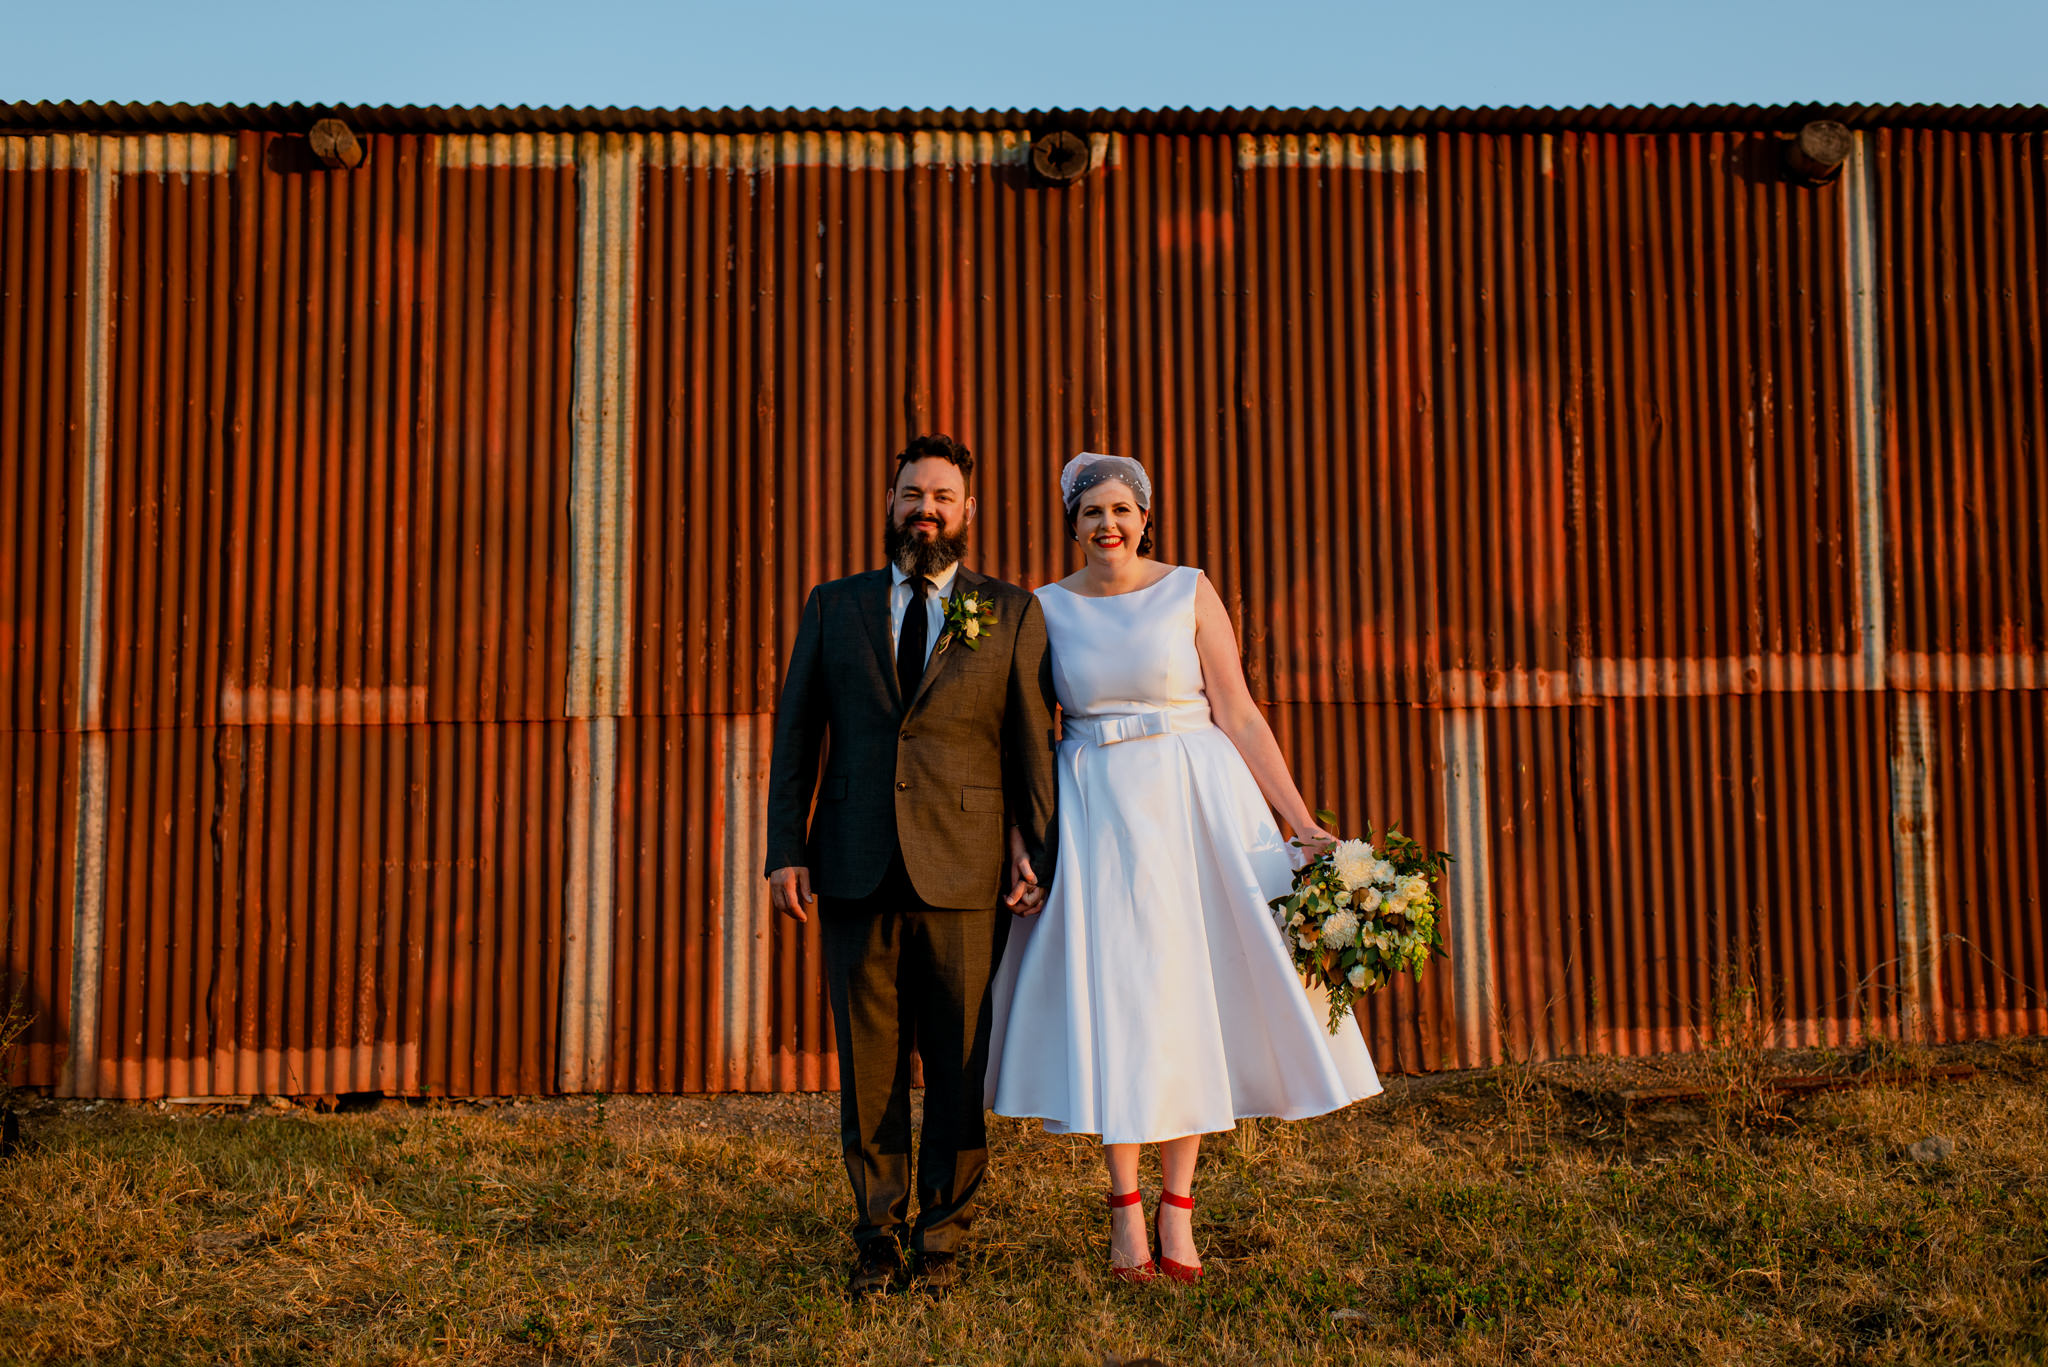 A bride and groom hold hands and laugh in front of a rusty iron shed